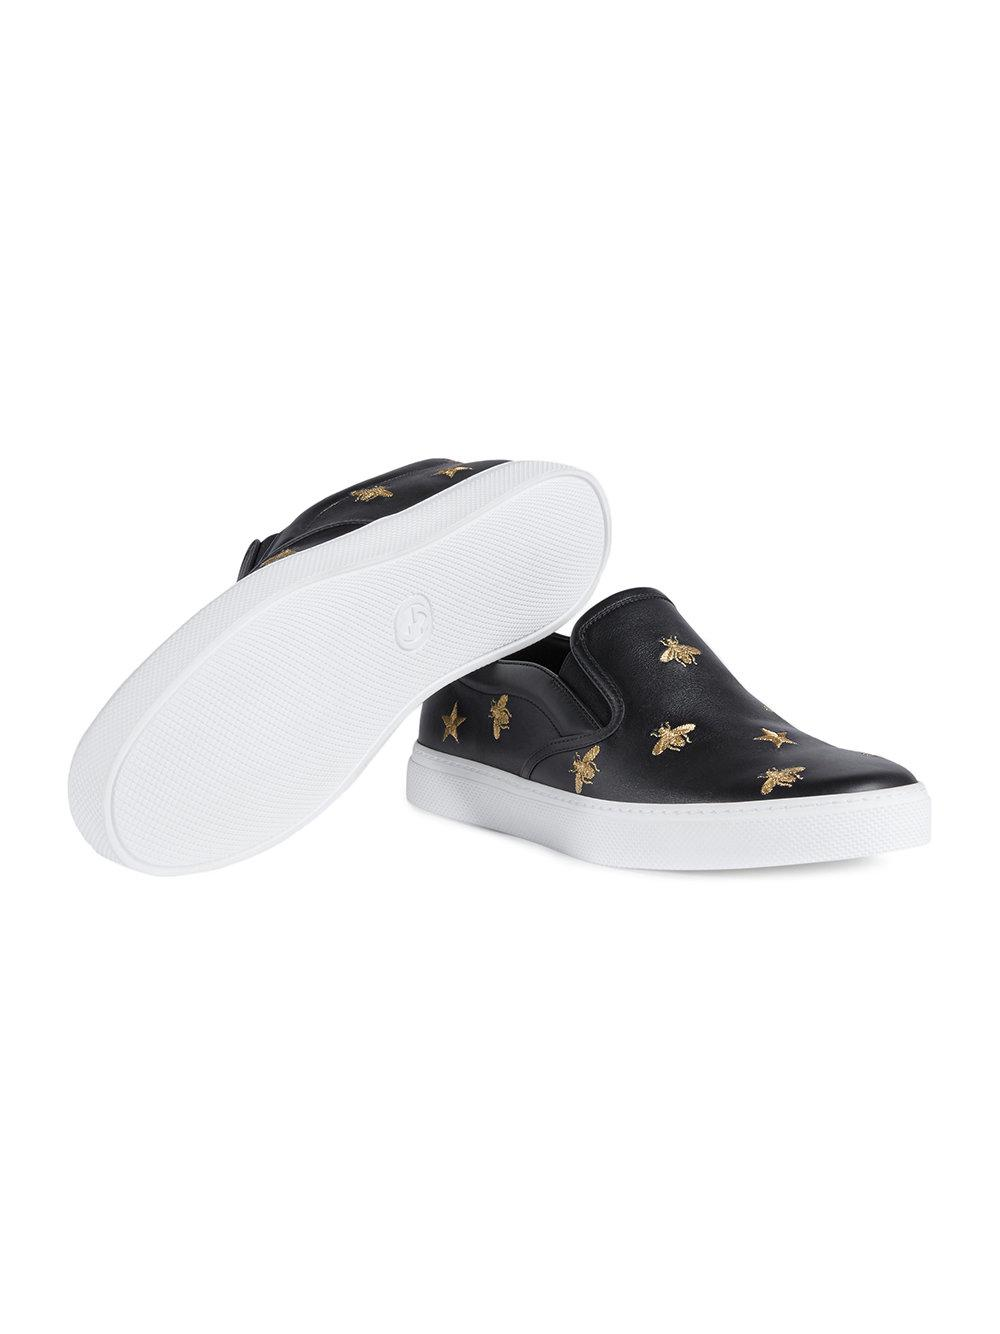 5a4750e8195 Gucci - Black Leather Slip-on Sneaker With Bees for Men - Lyst. View  fullscreen